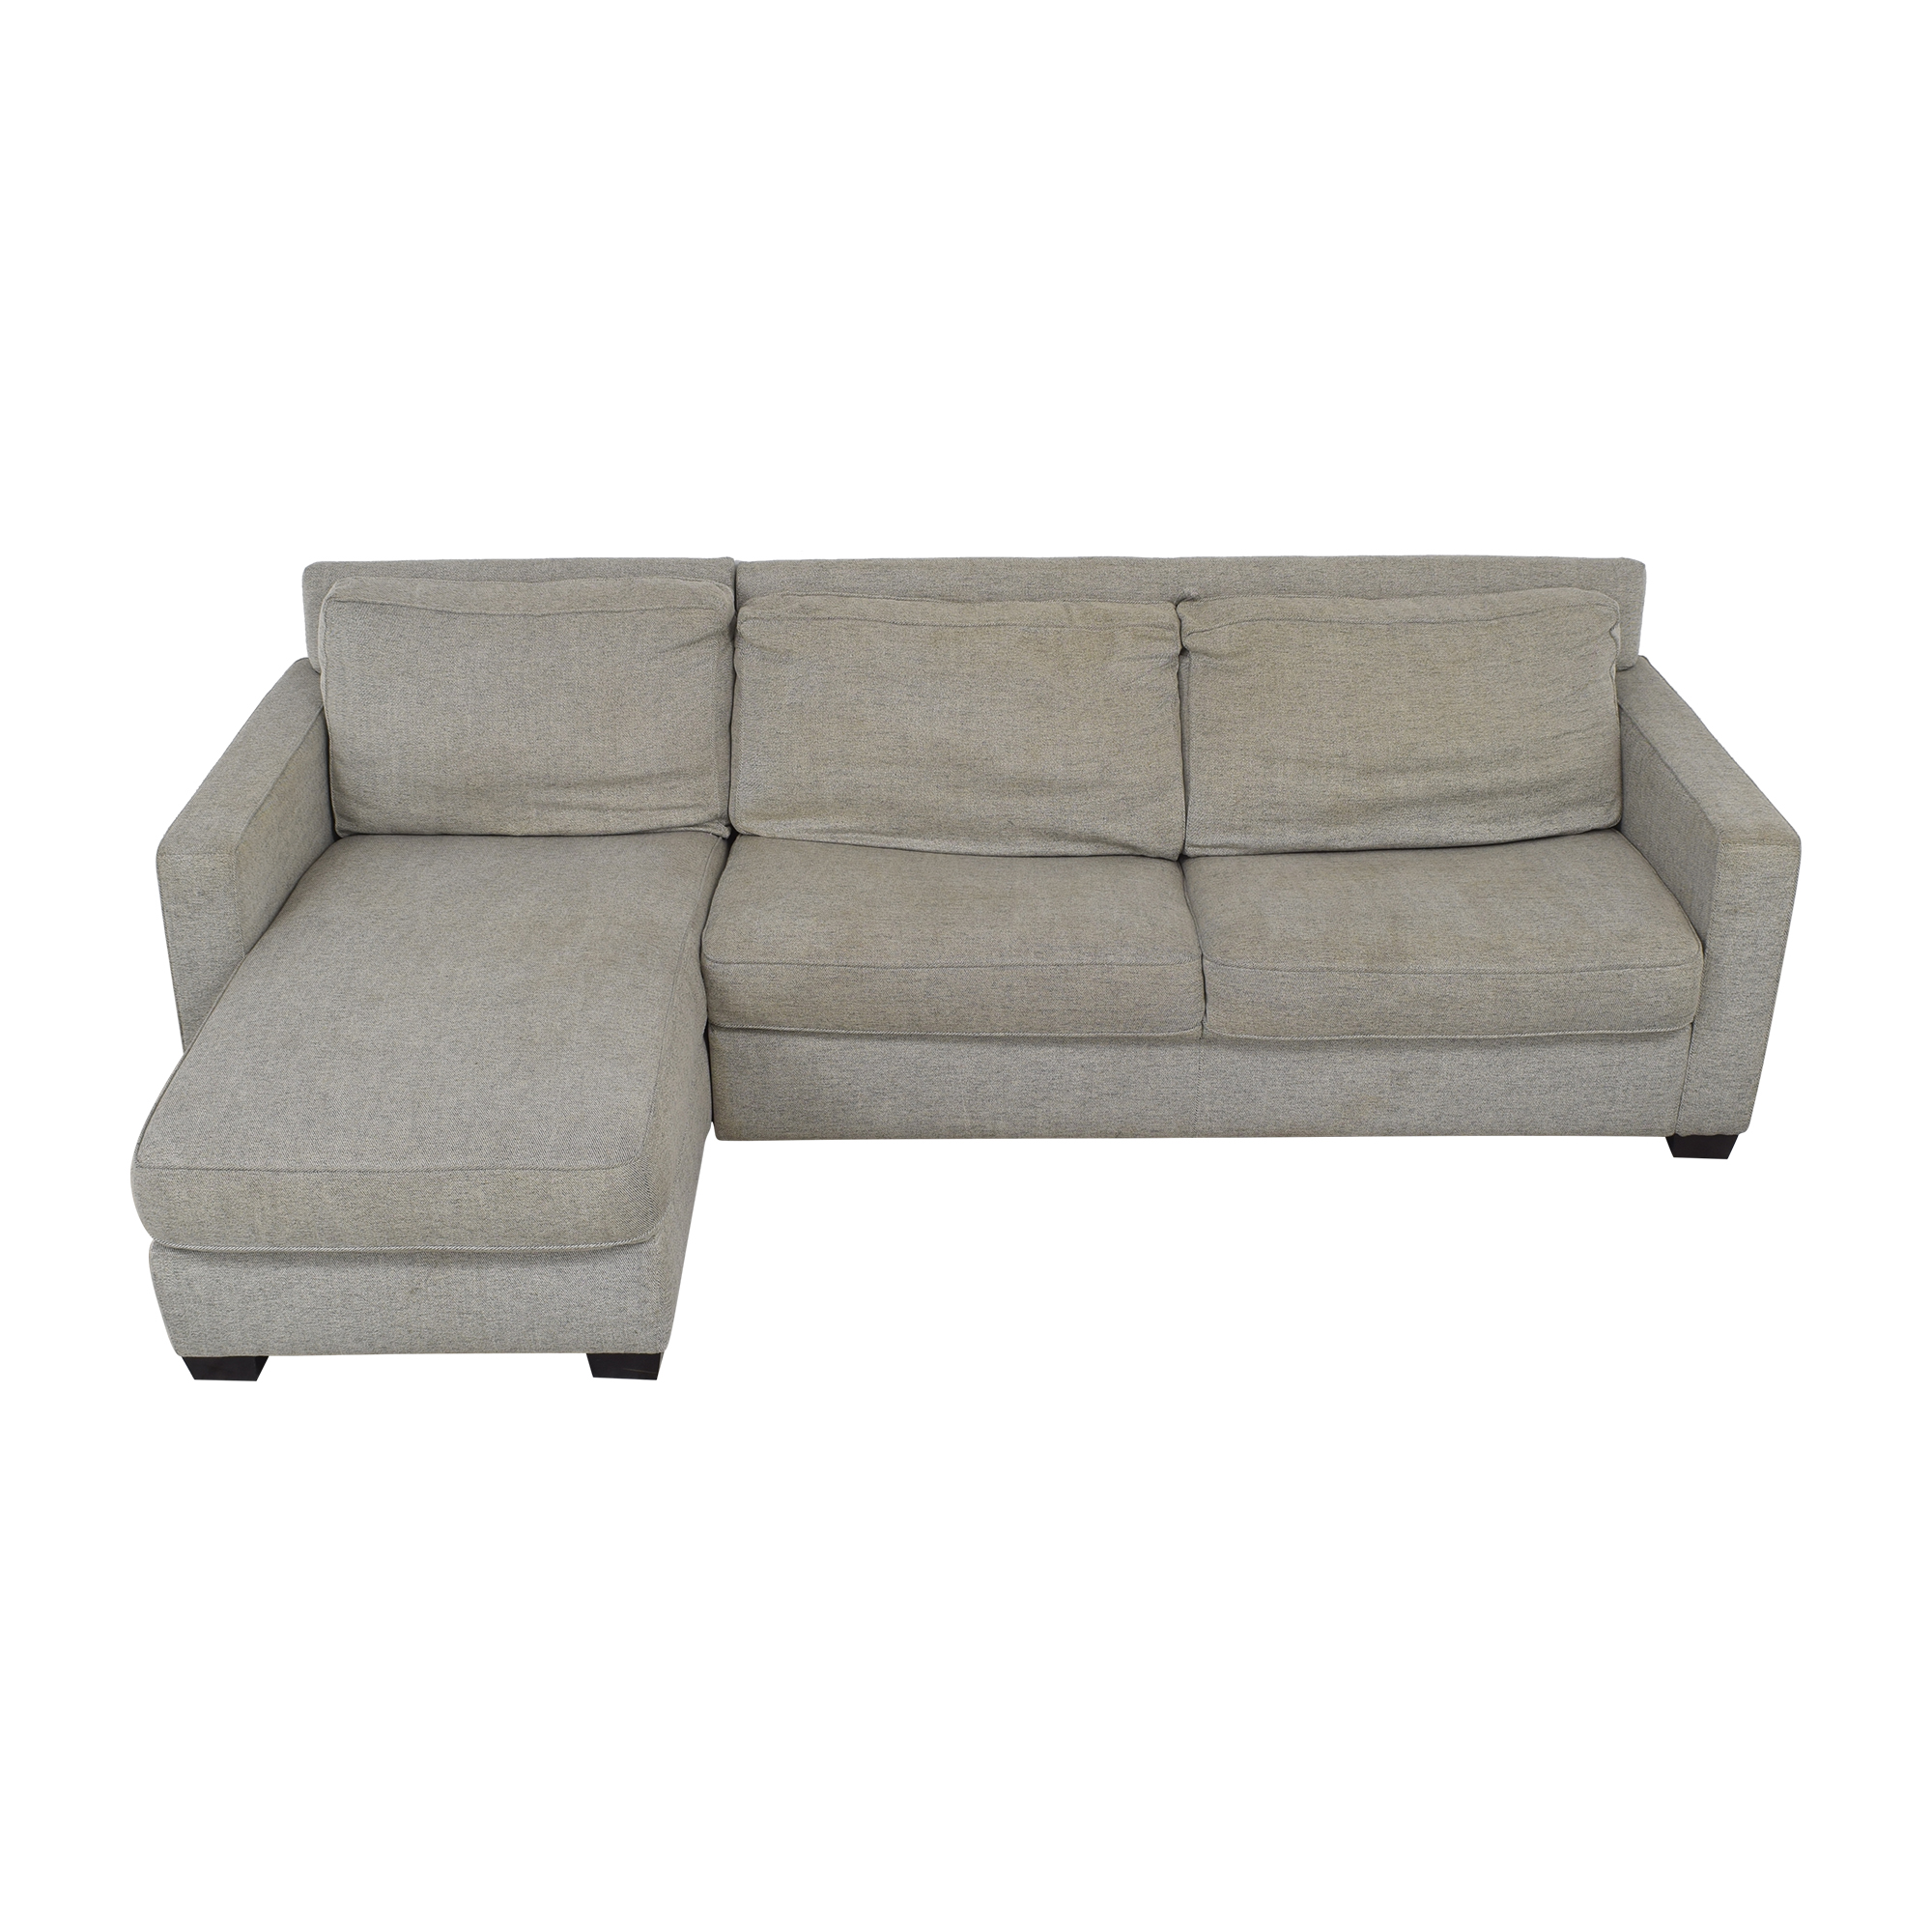 West Elm West Elm Henry 2-Piece Full Sleeper Sectional with Storage nyc